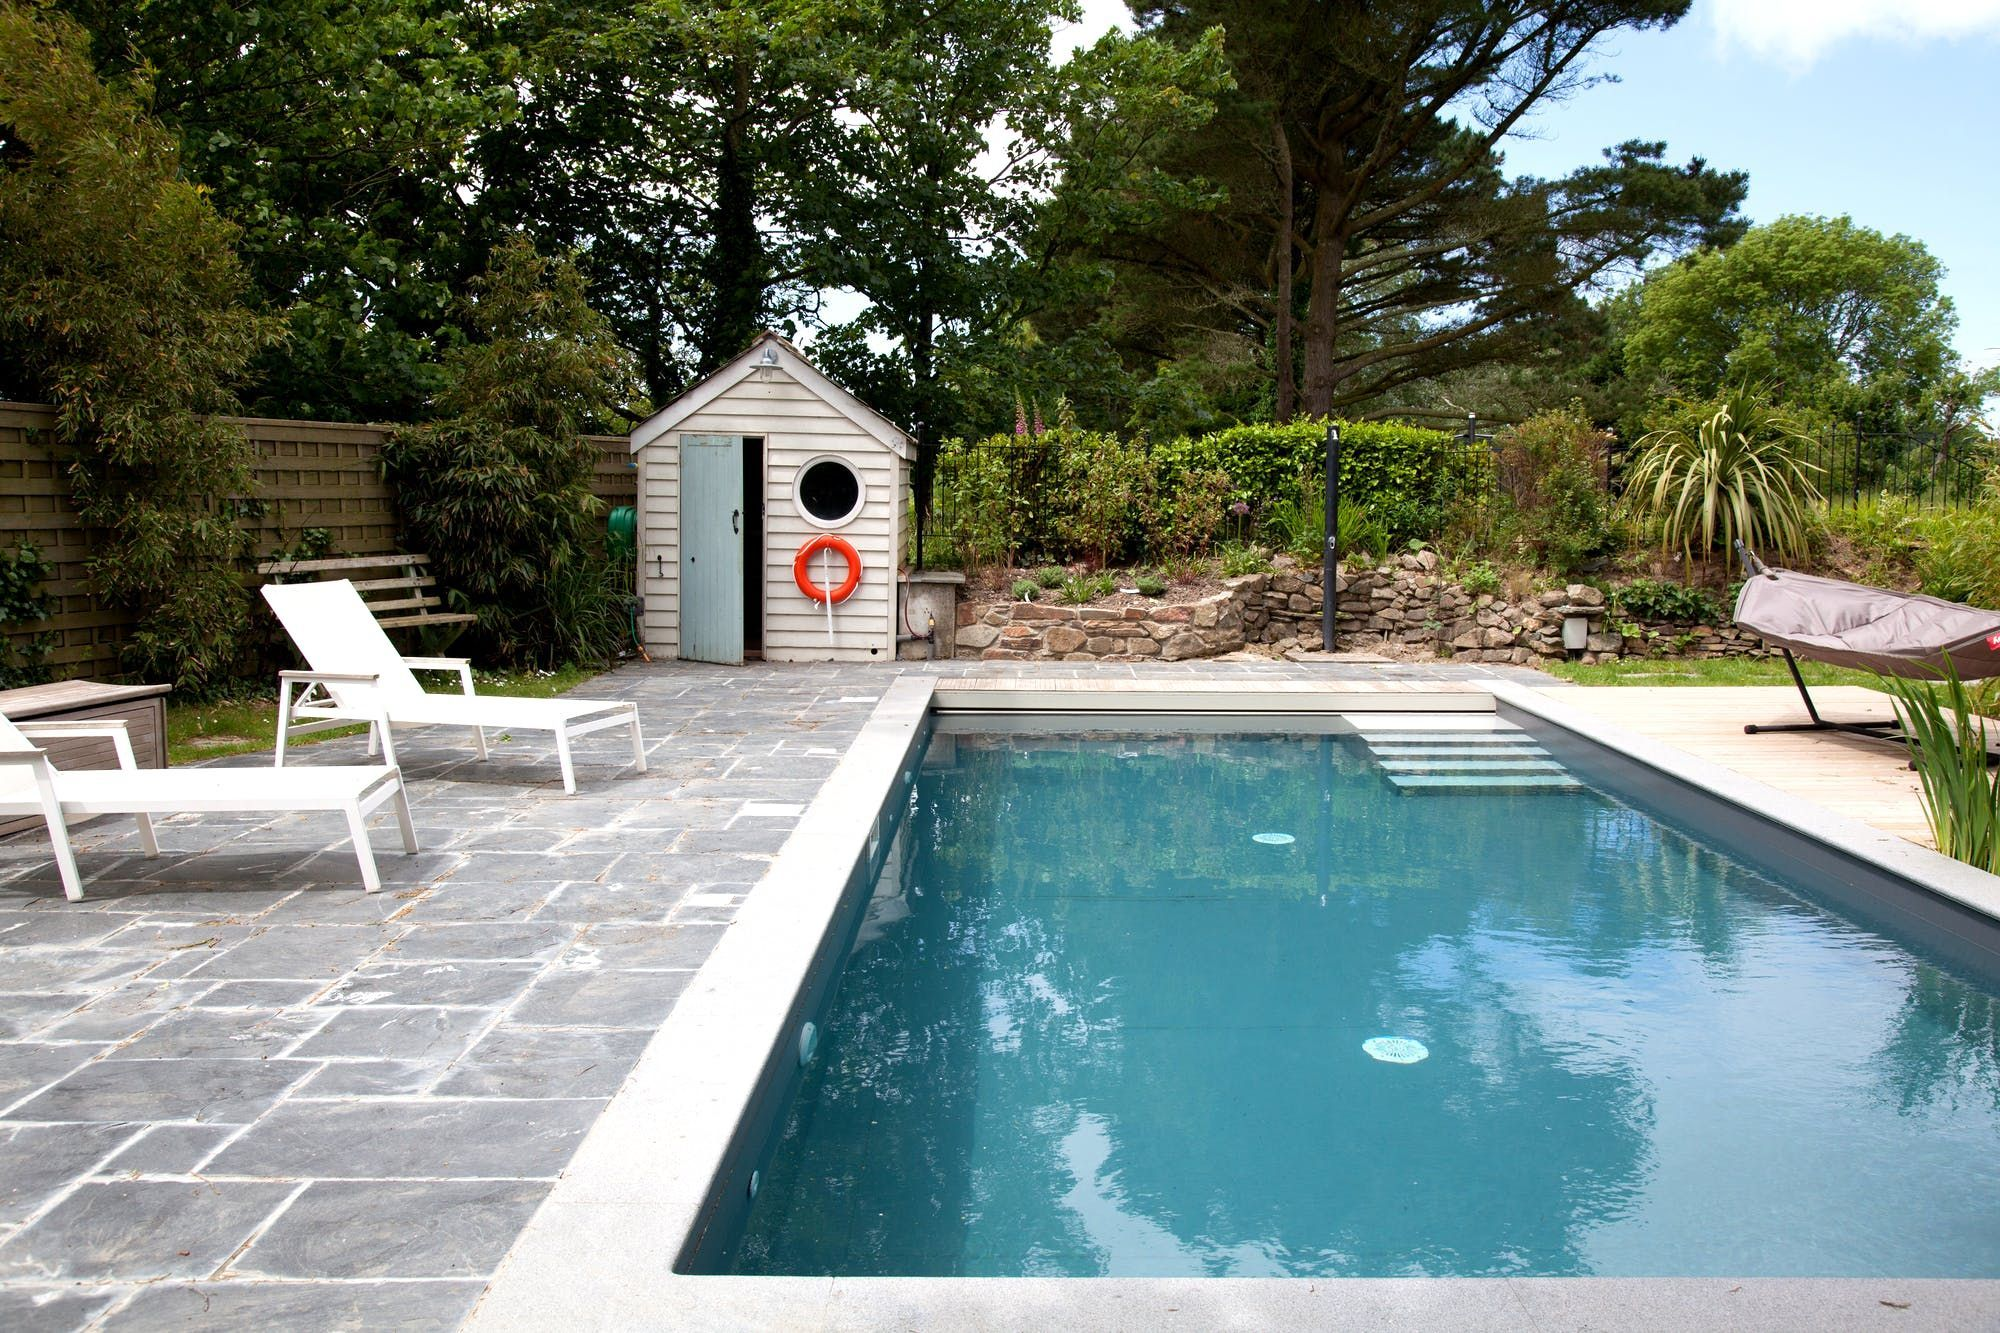 20 Of The Best Coolstays With Pools In The Uk Swimming Pool House Pool Houses Big Pools